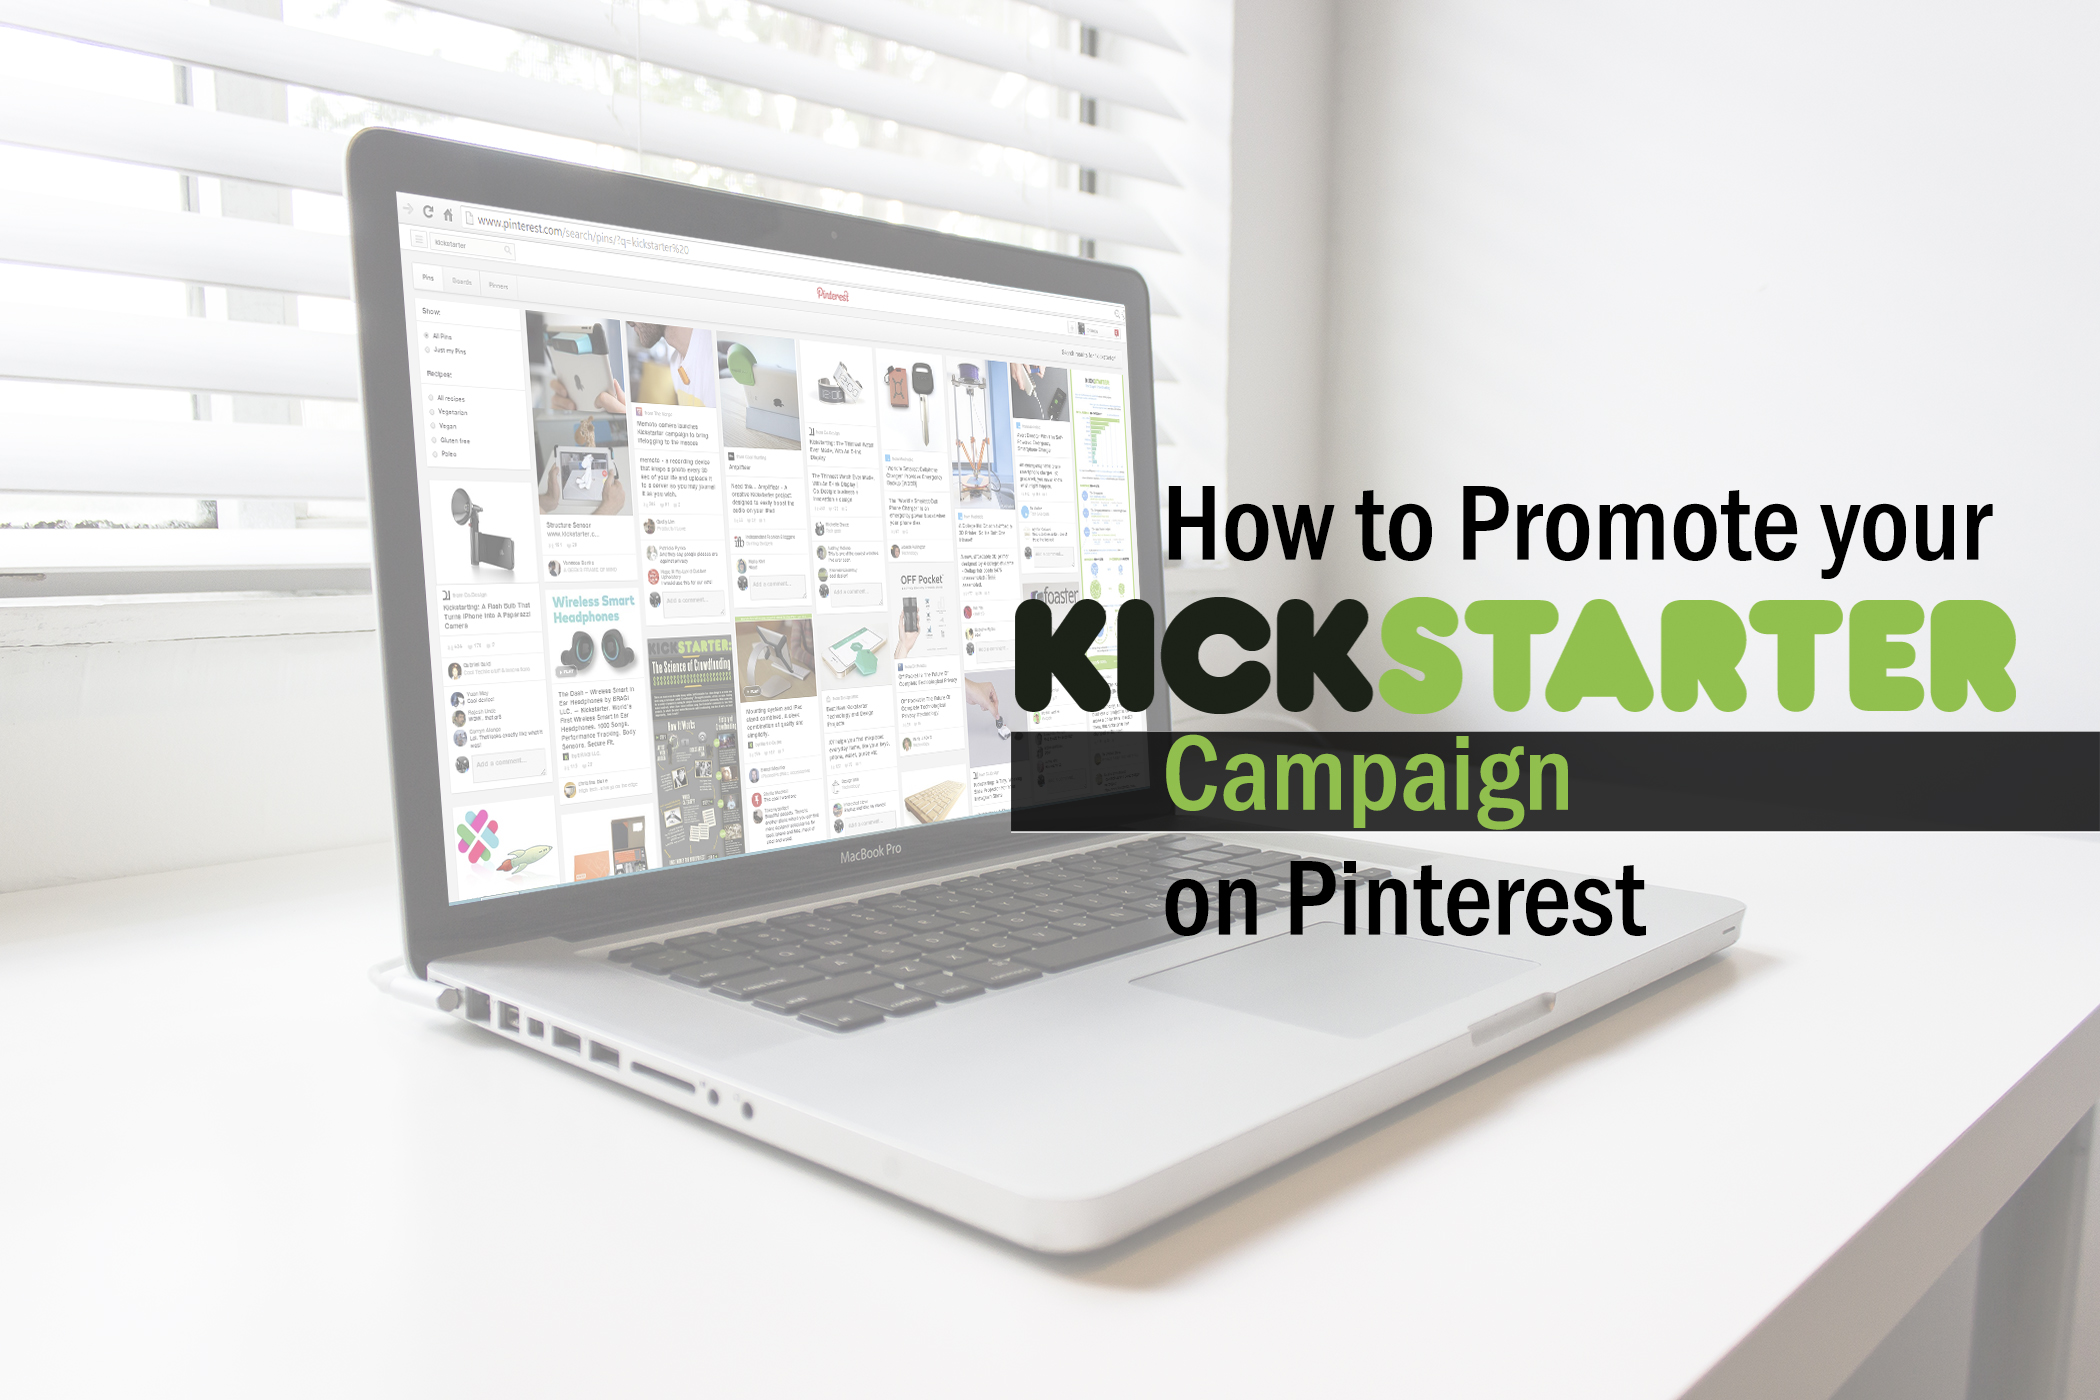 How to Promote your Kickstarter Campaign on Pinterest